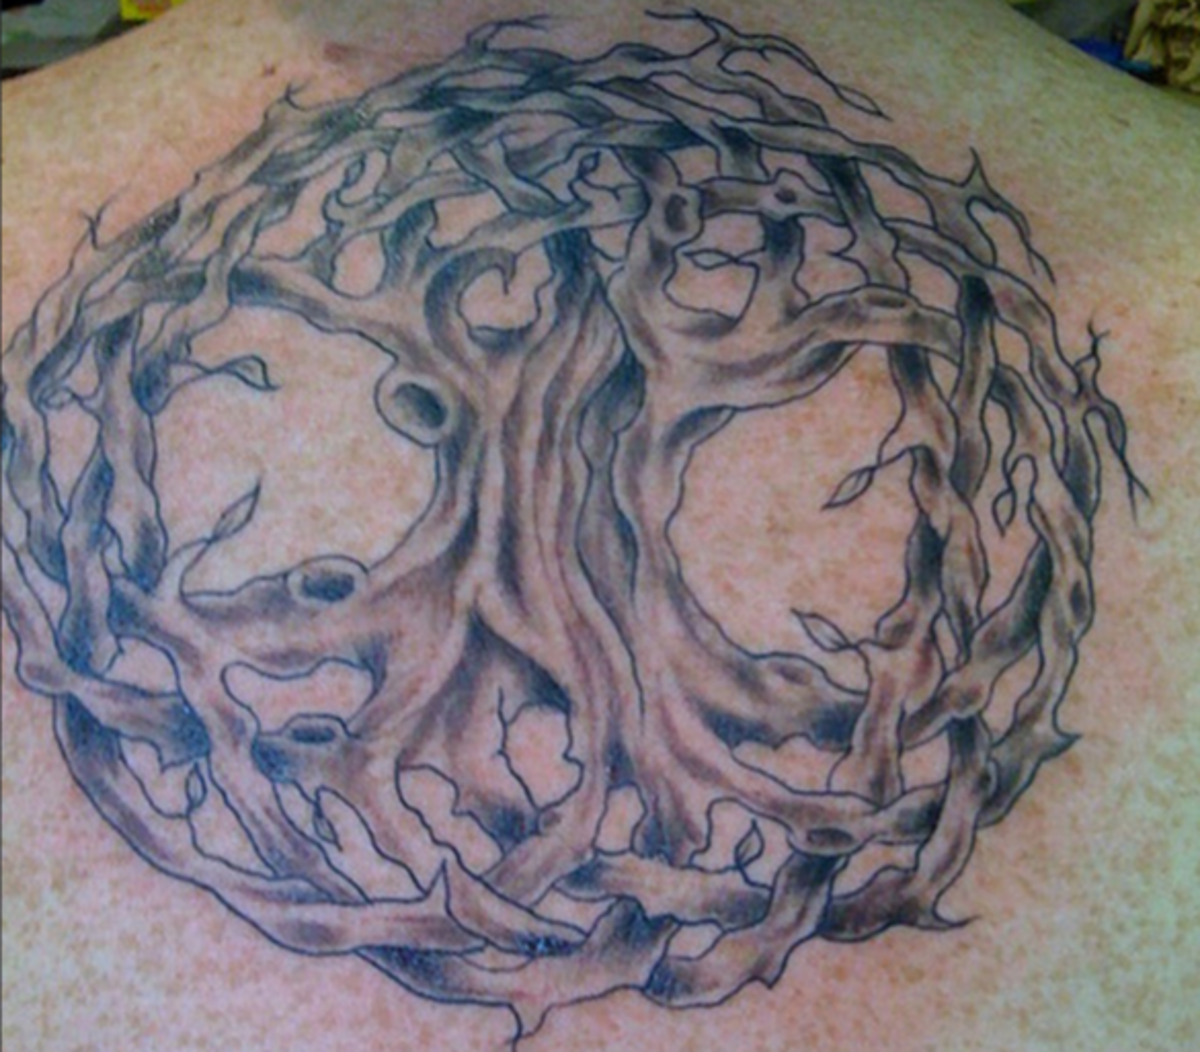 A Celtic tree of life tattoo.